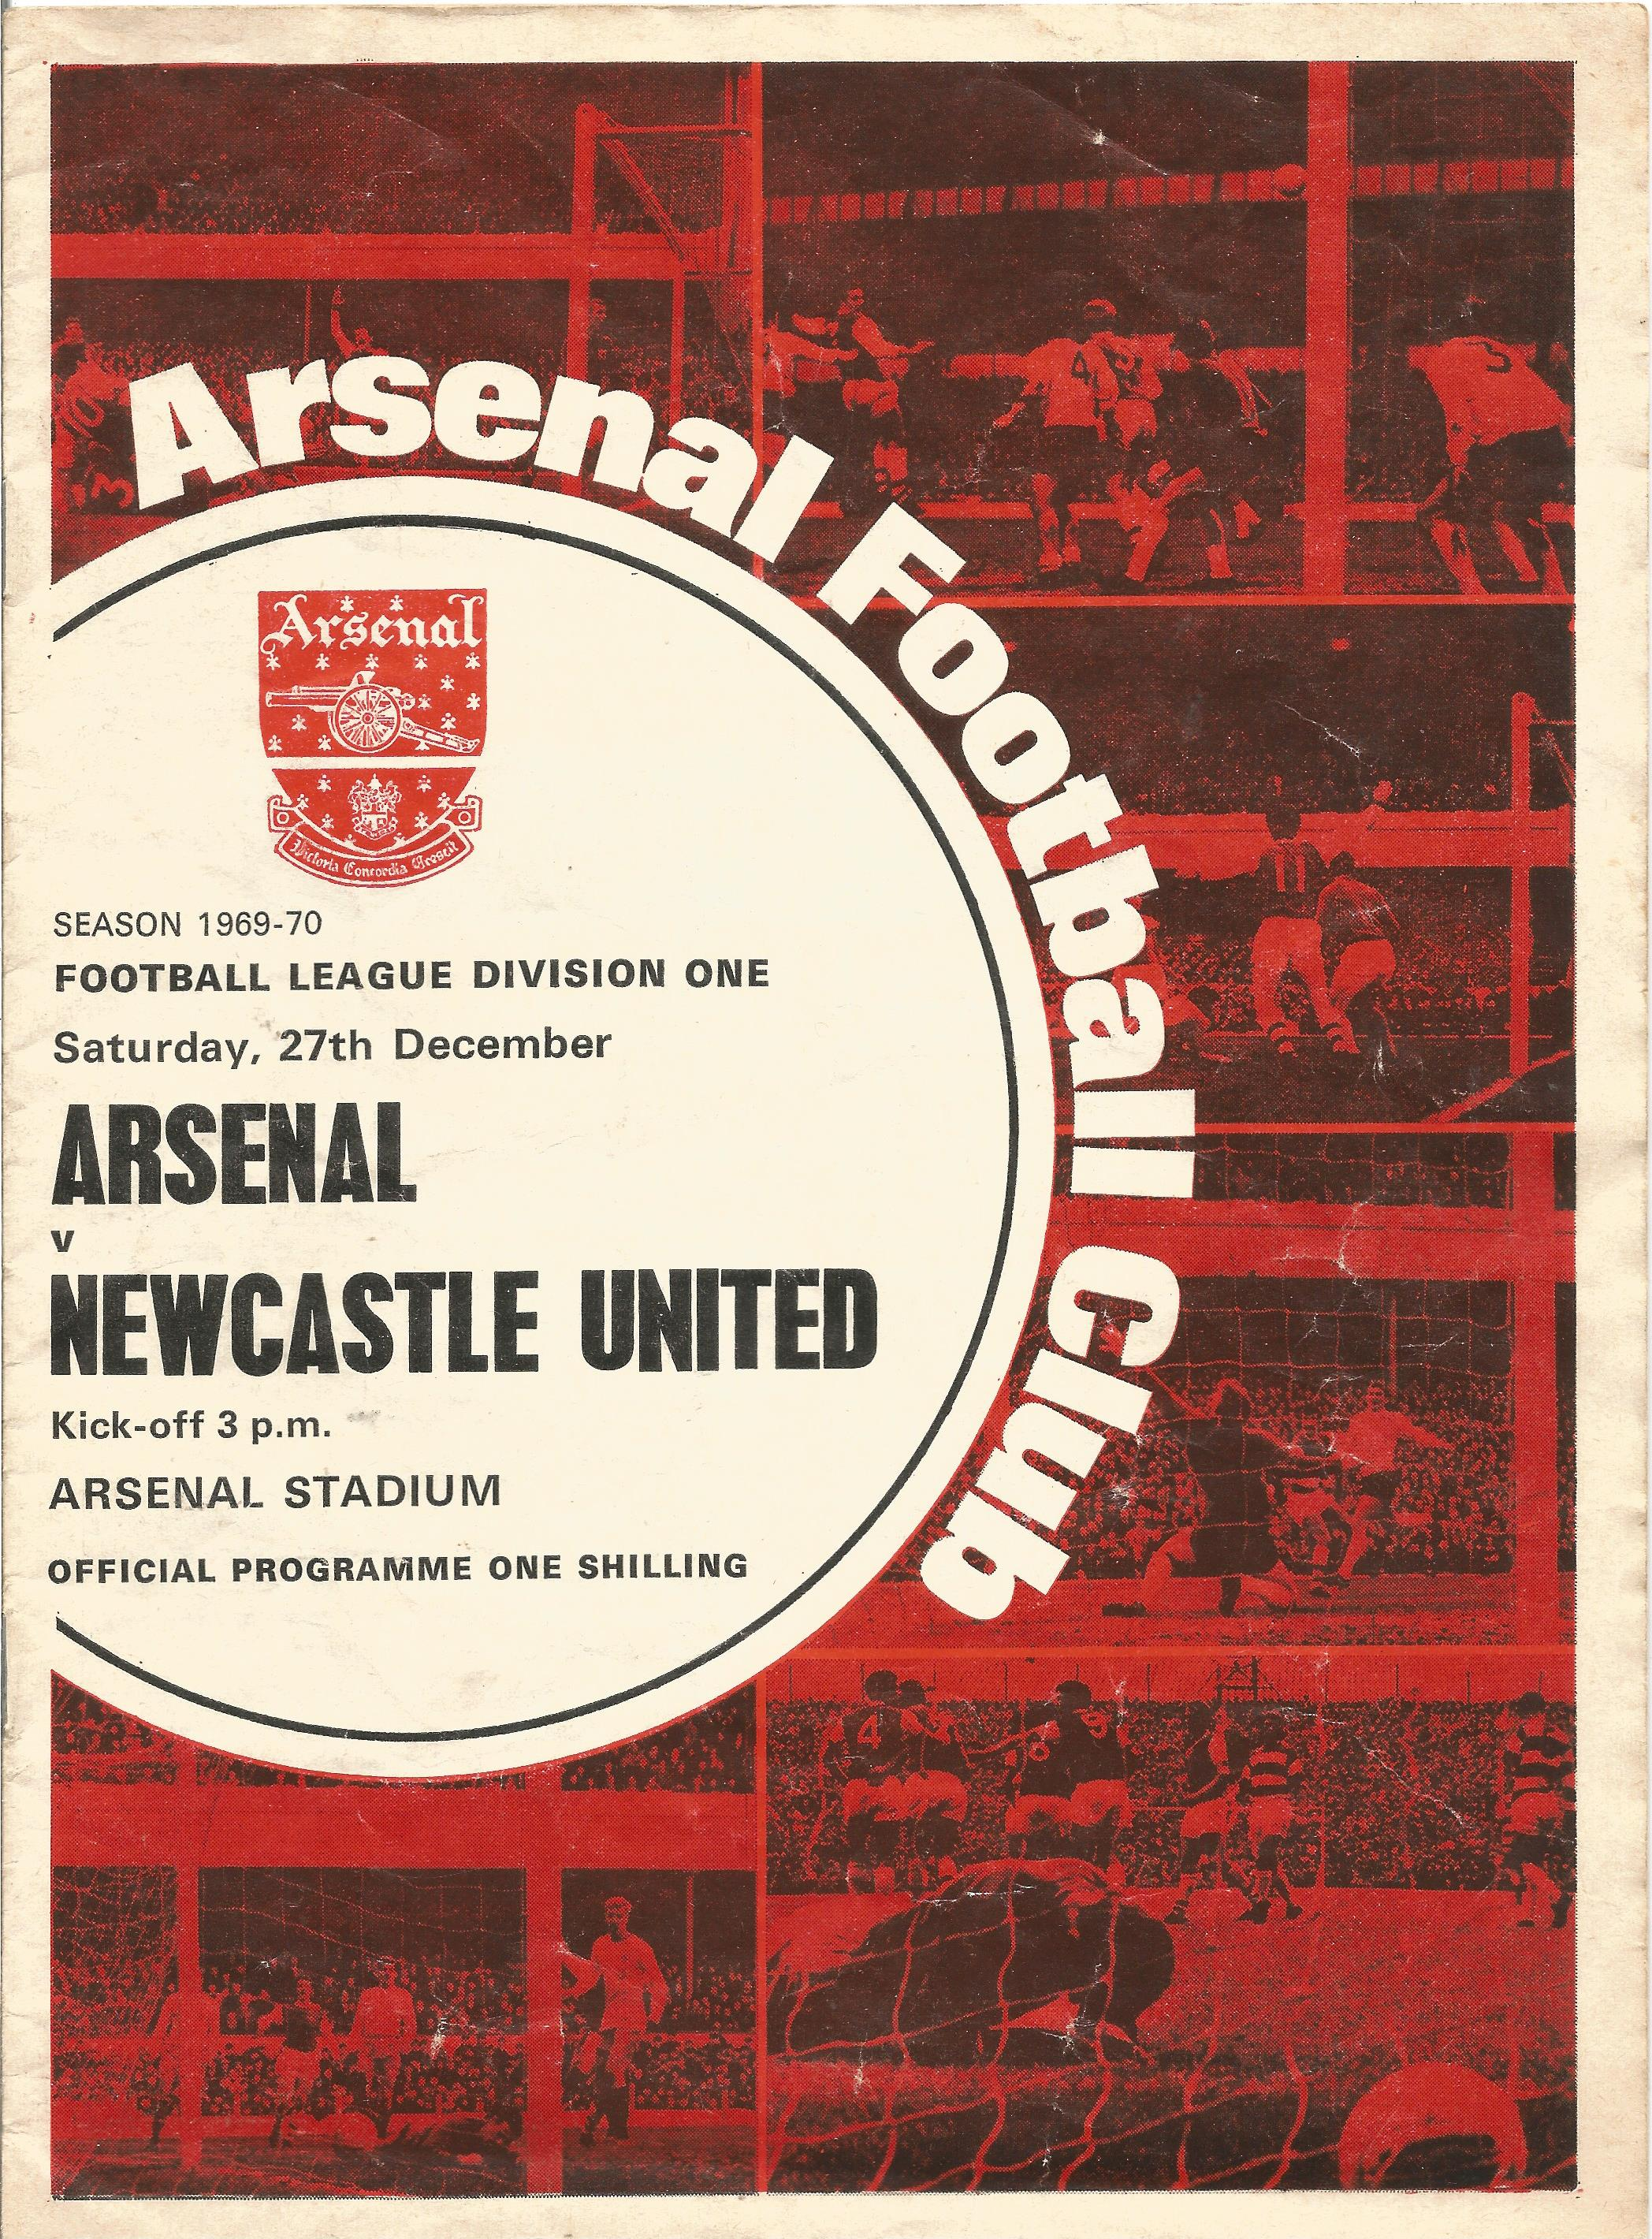 Arsenal. A Collection of 4 matchday programmes. From 1950, 1969, 1969 and 1983. some showing signs